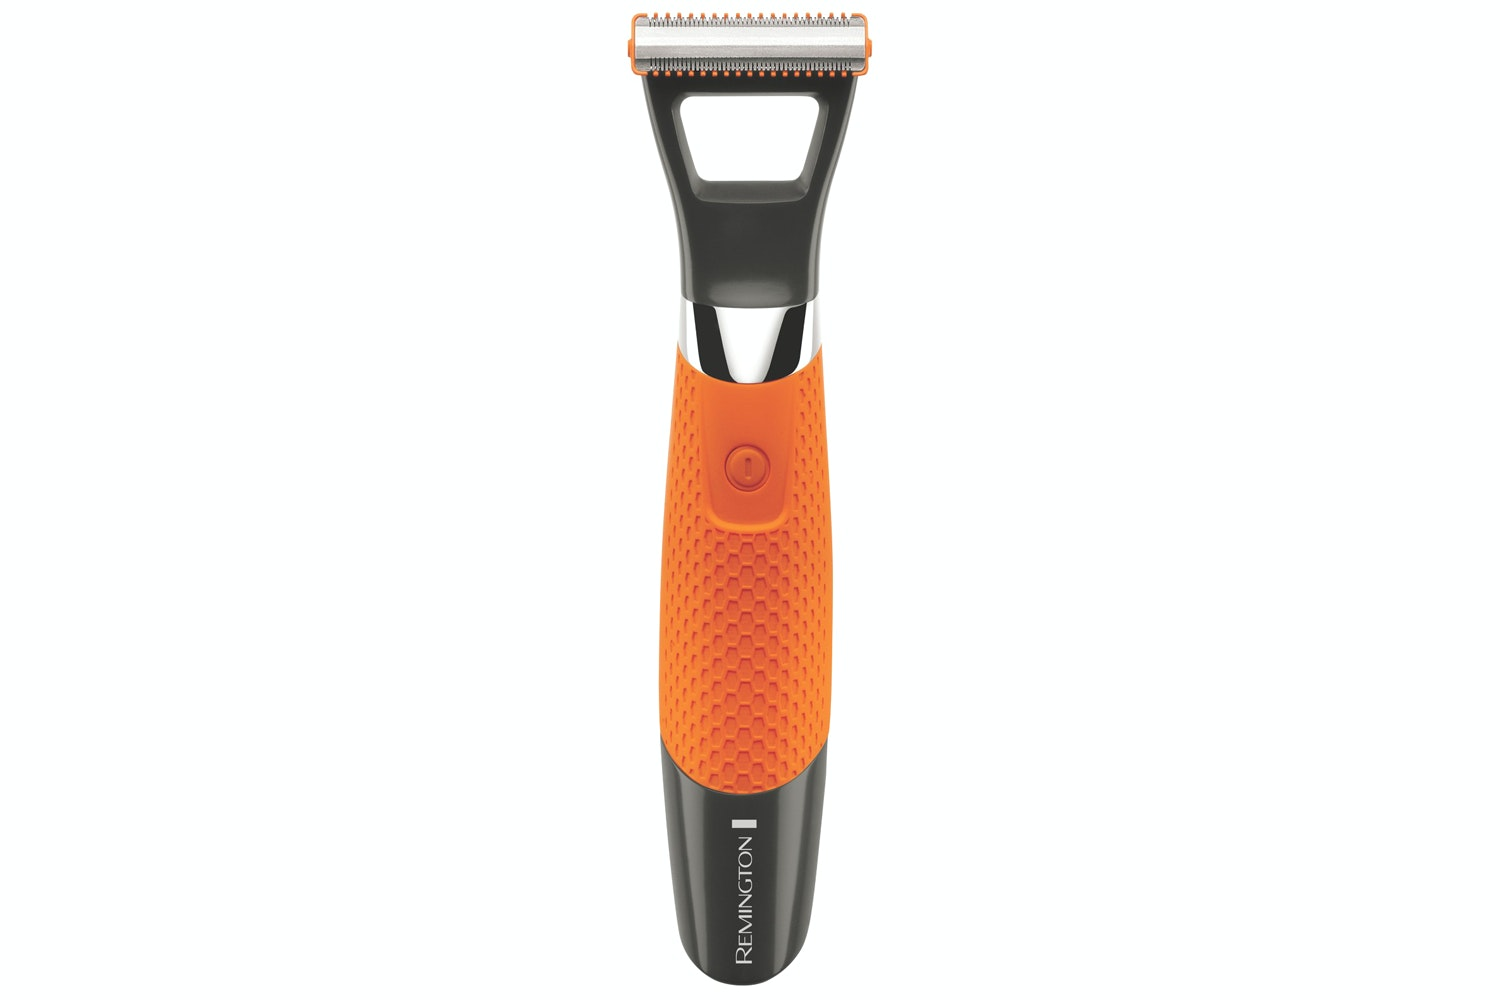 Remington Durablade Wet & Dry Shaver | MB050